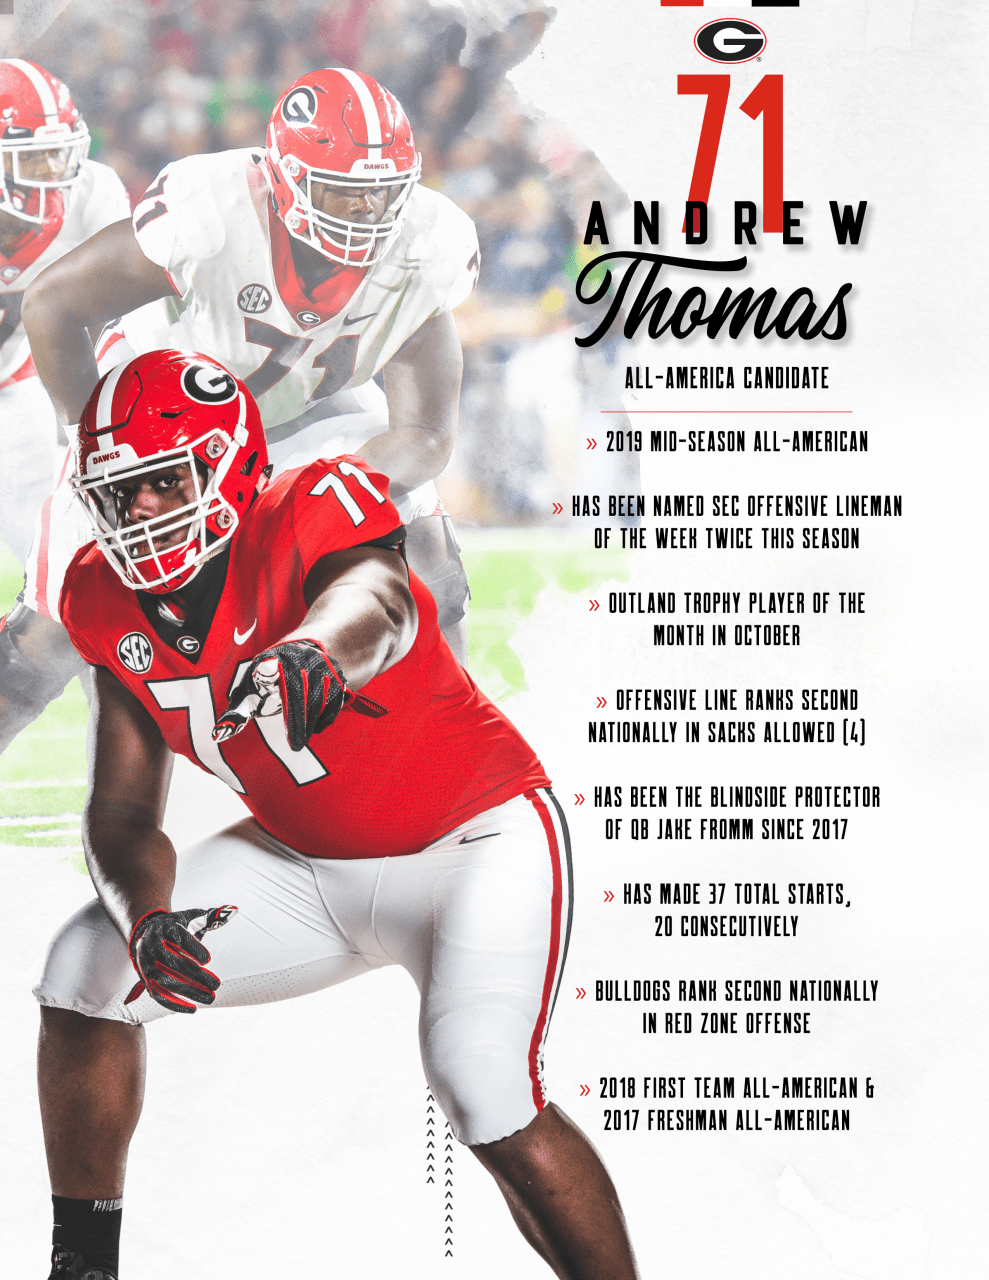 Andrew Thomas Burst On The Scene At Uga To Earn Freshman All American In 2017 In 2018 Accomplished The Feat As All Ame Georgia Bulldogs American Ncaa Football